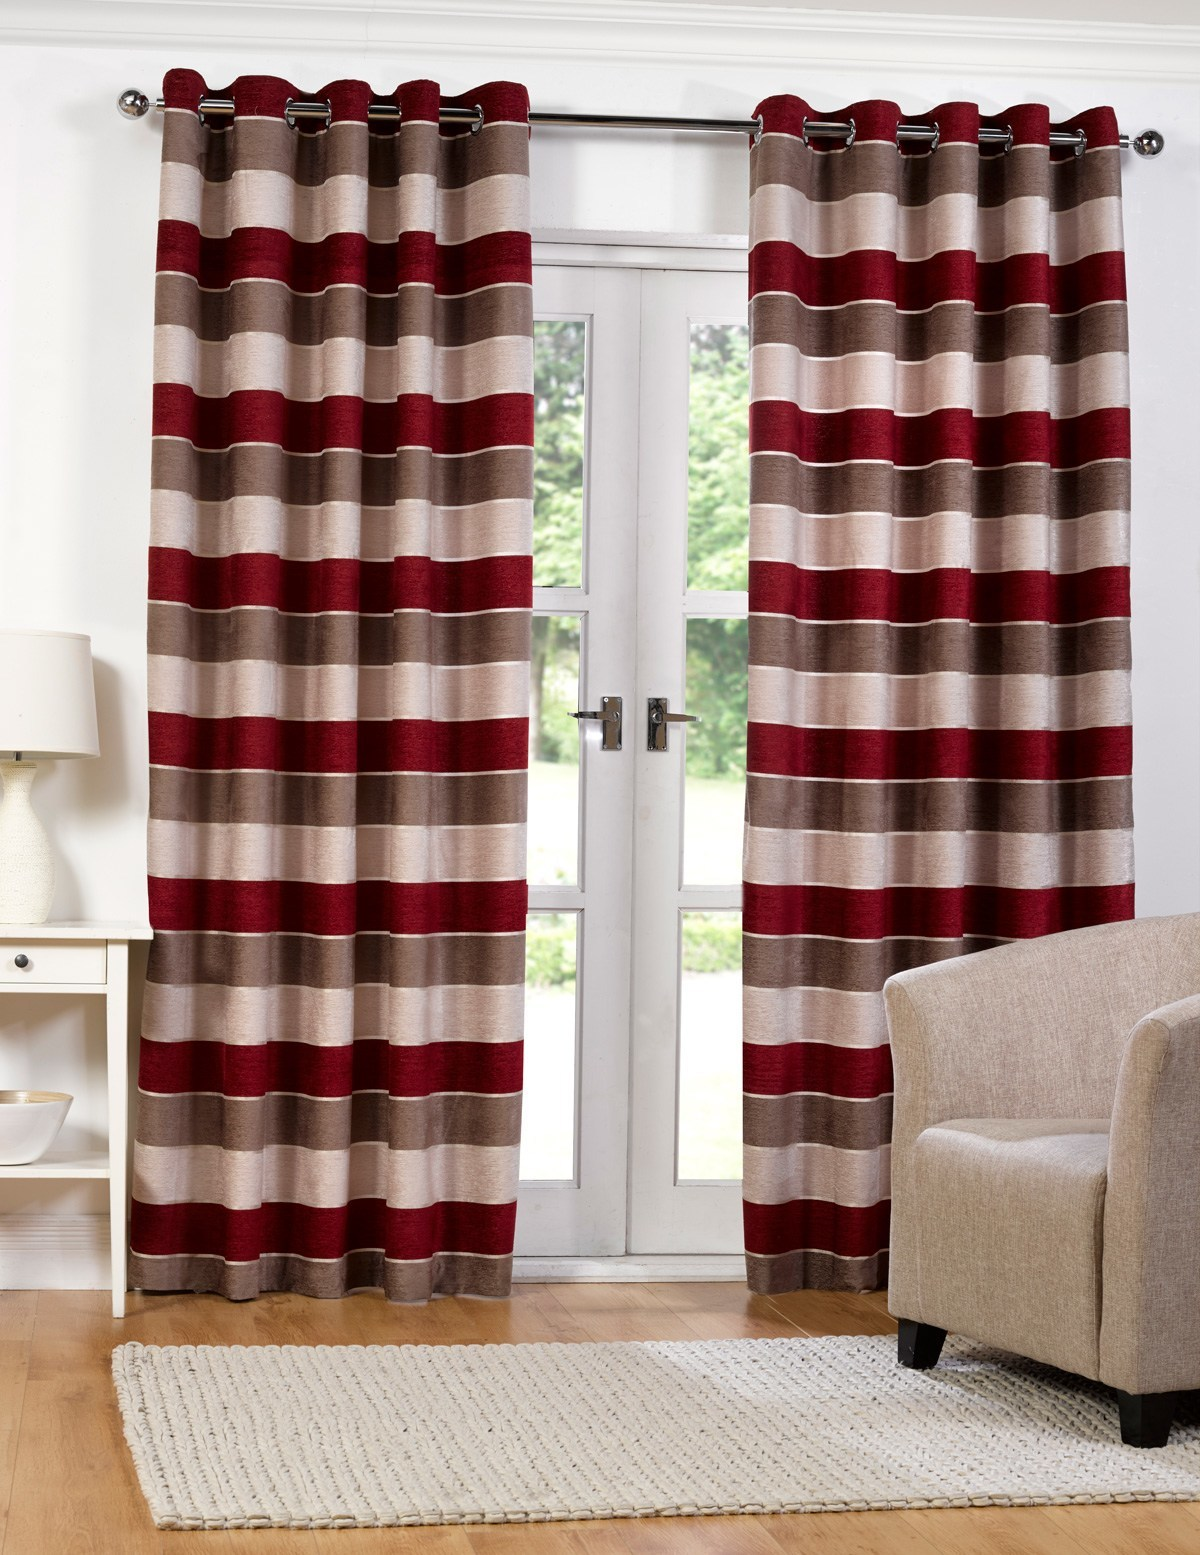 Spotlight Eyelet Curtains Homebase Arthouse Duropolymer Coving Chicago 4 Pack